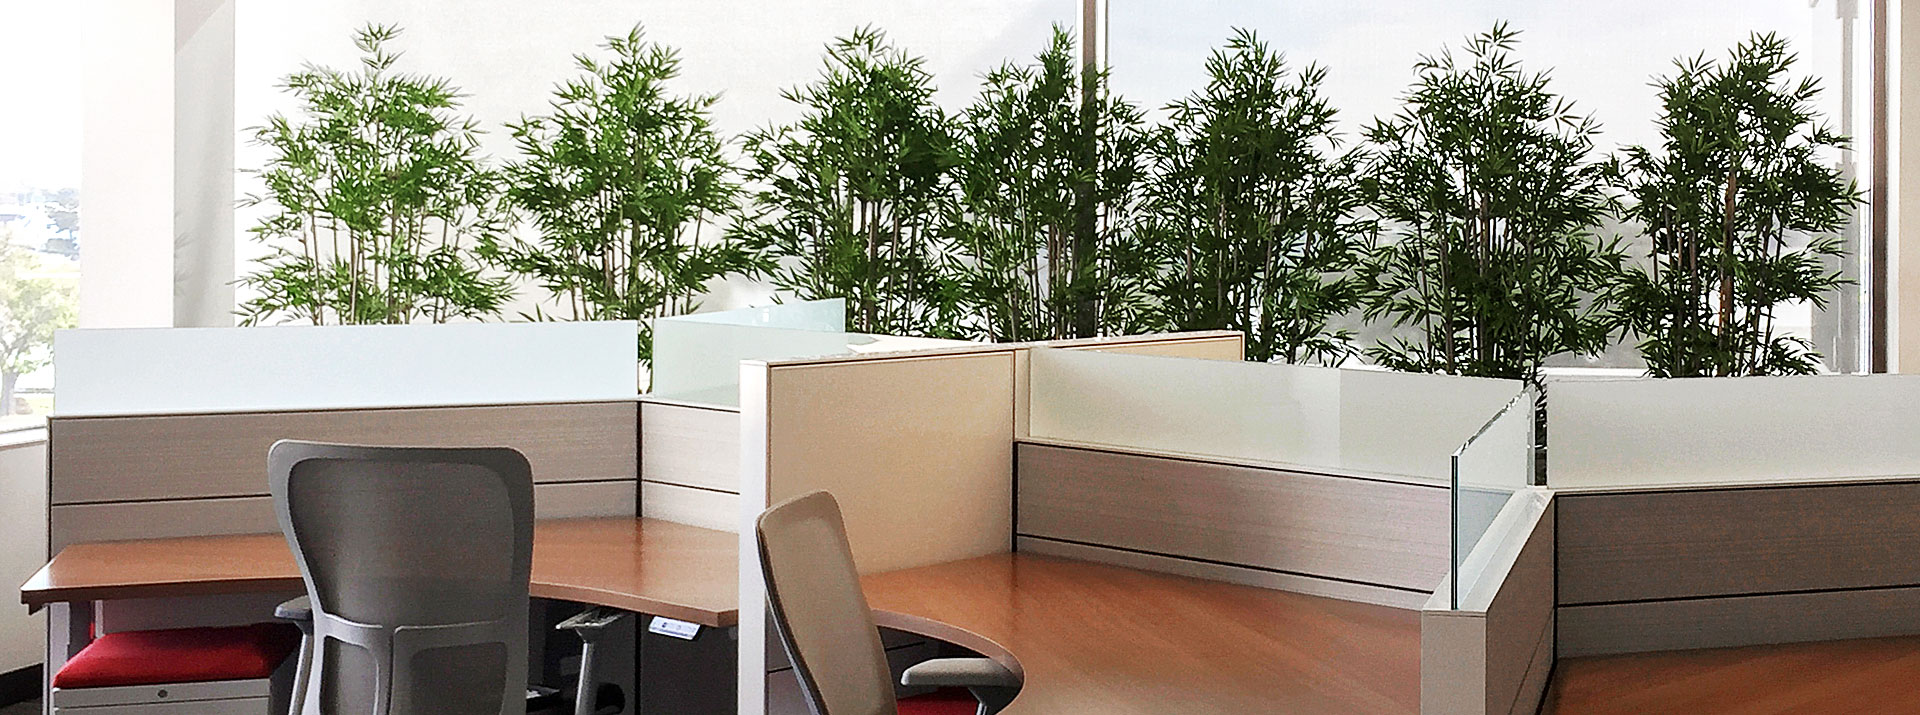 Office Wall Bamboo Planters